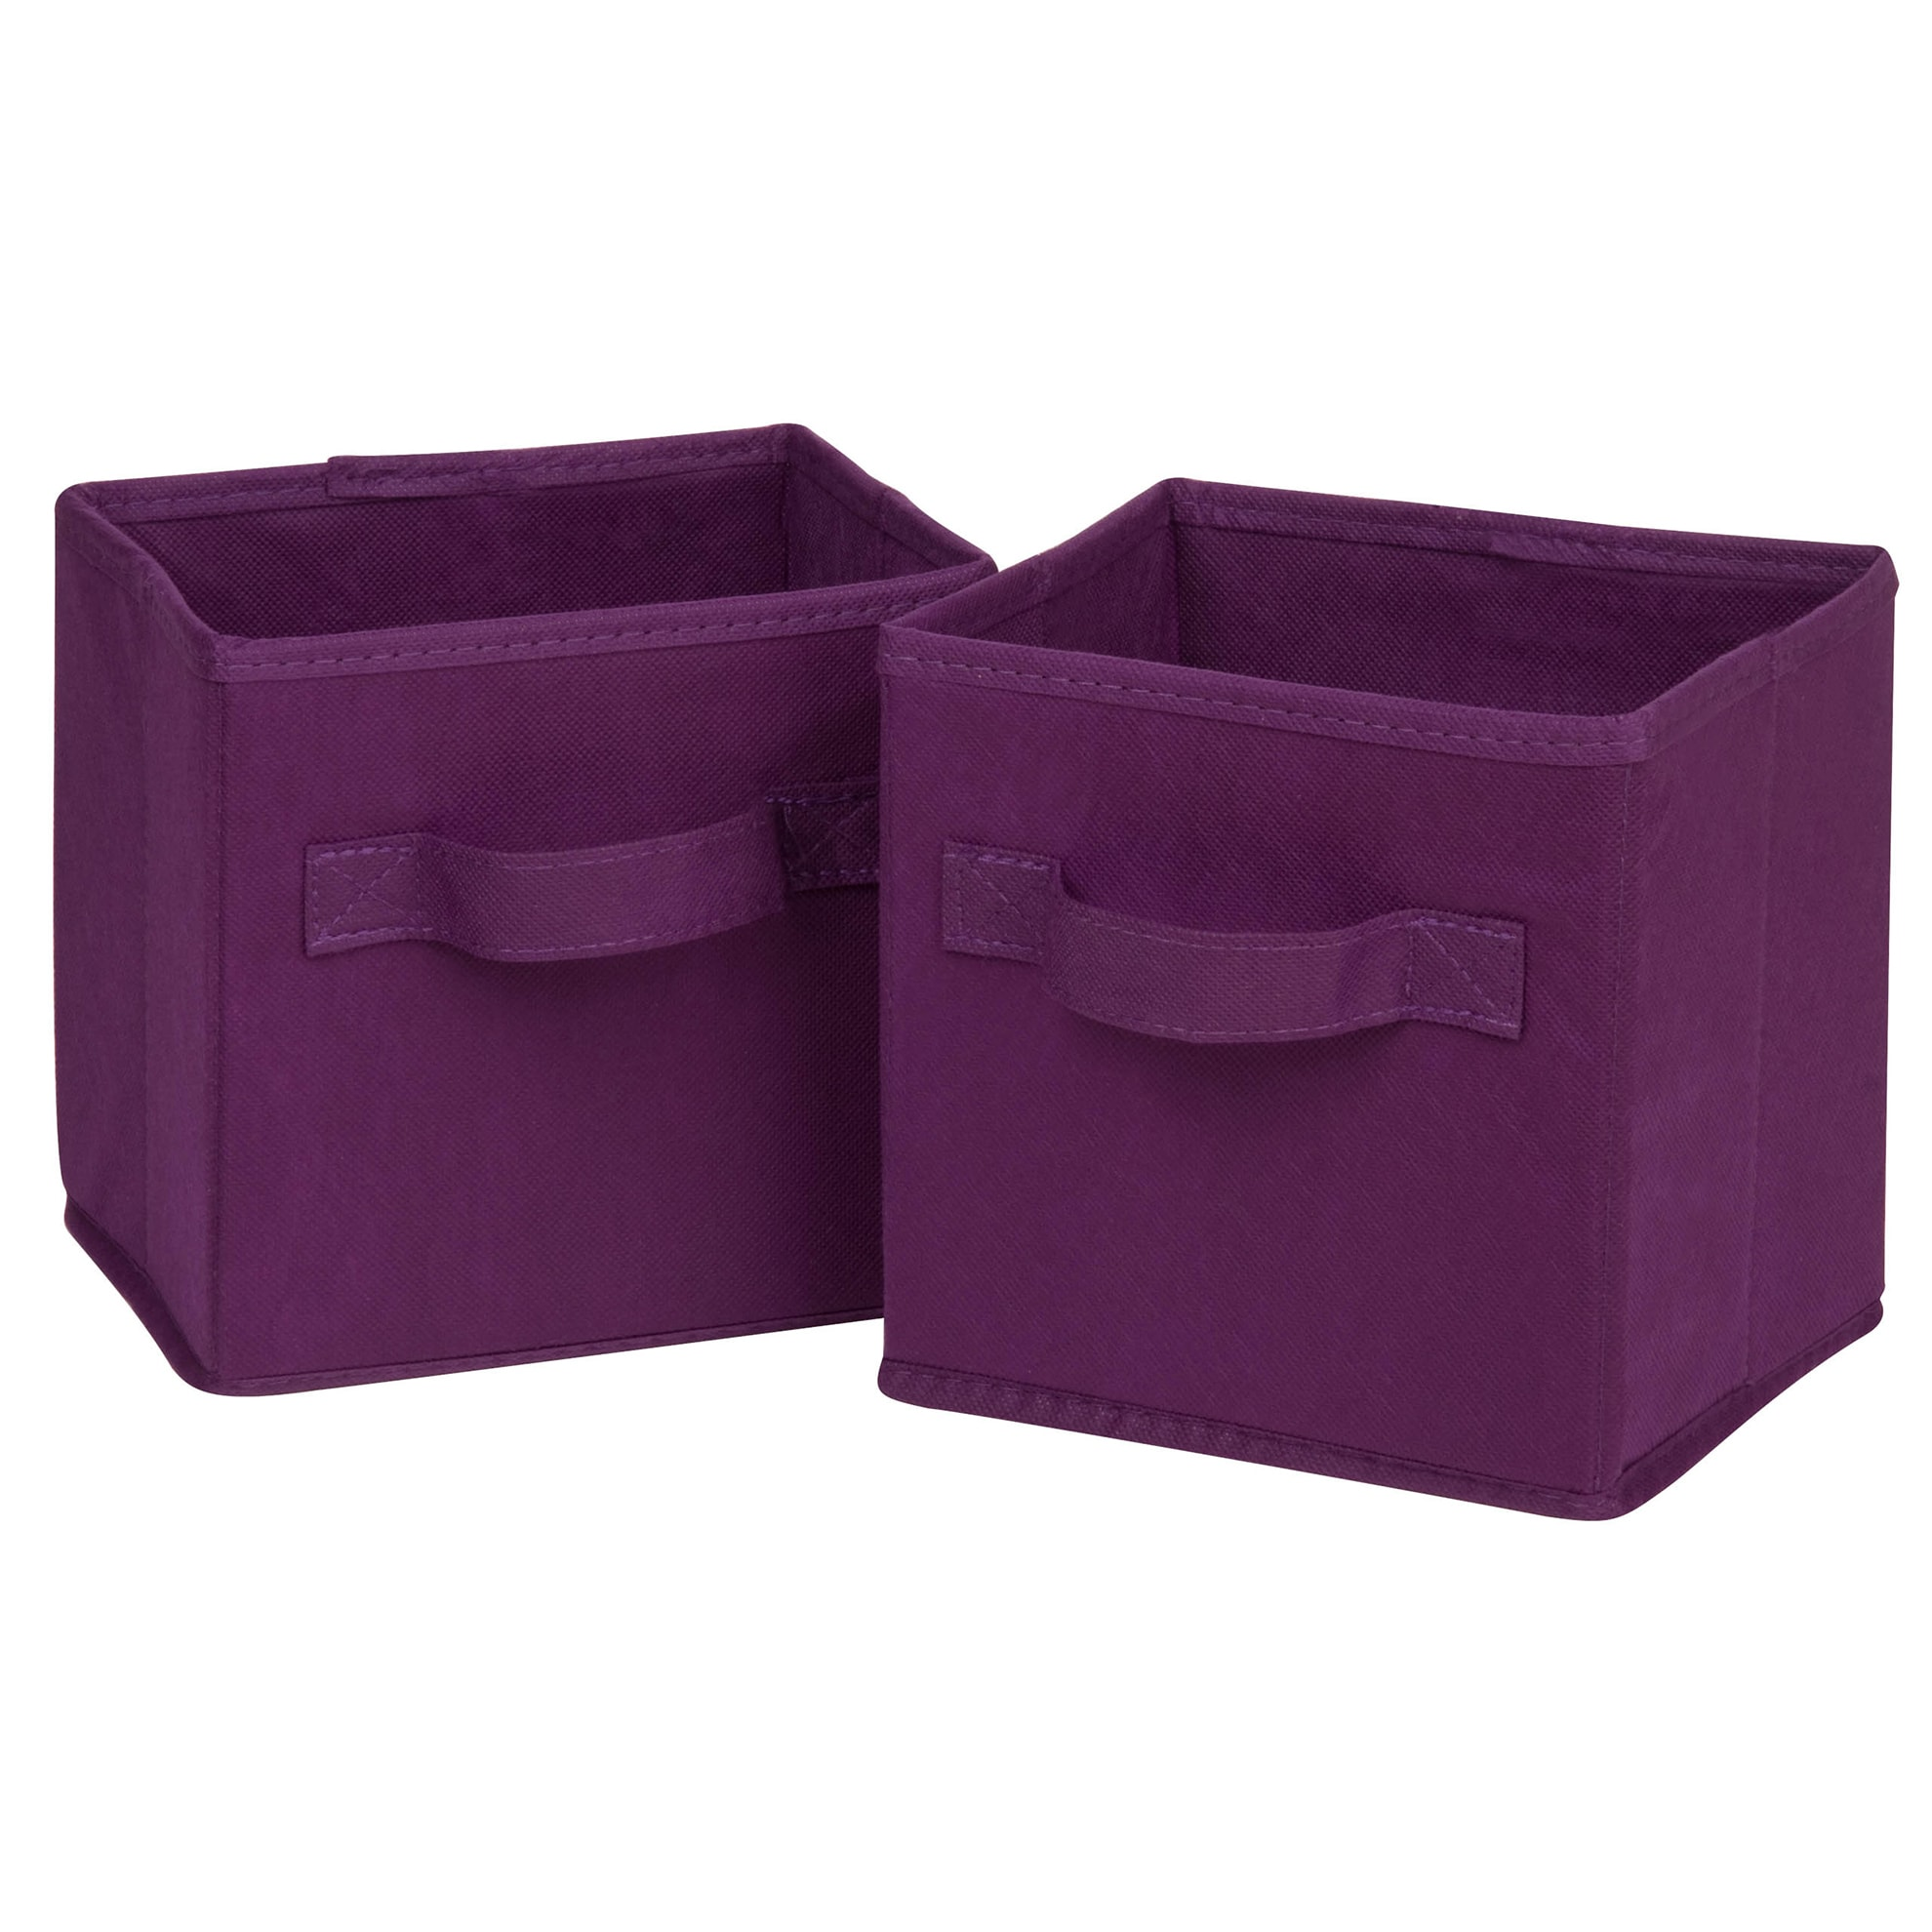 Honey Can Do SFT 02088 Mini Purple Fabric Storage Bin Pack 2 Ct   Free  Shipping On Orders Over $45   Overstock   19249881